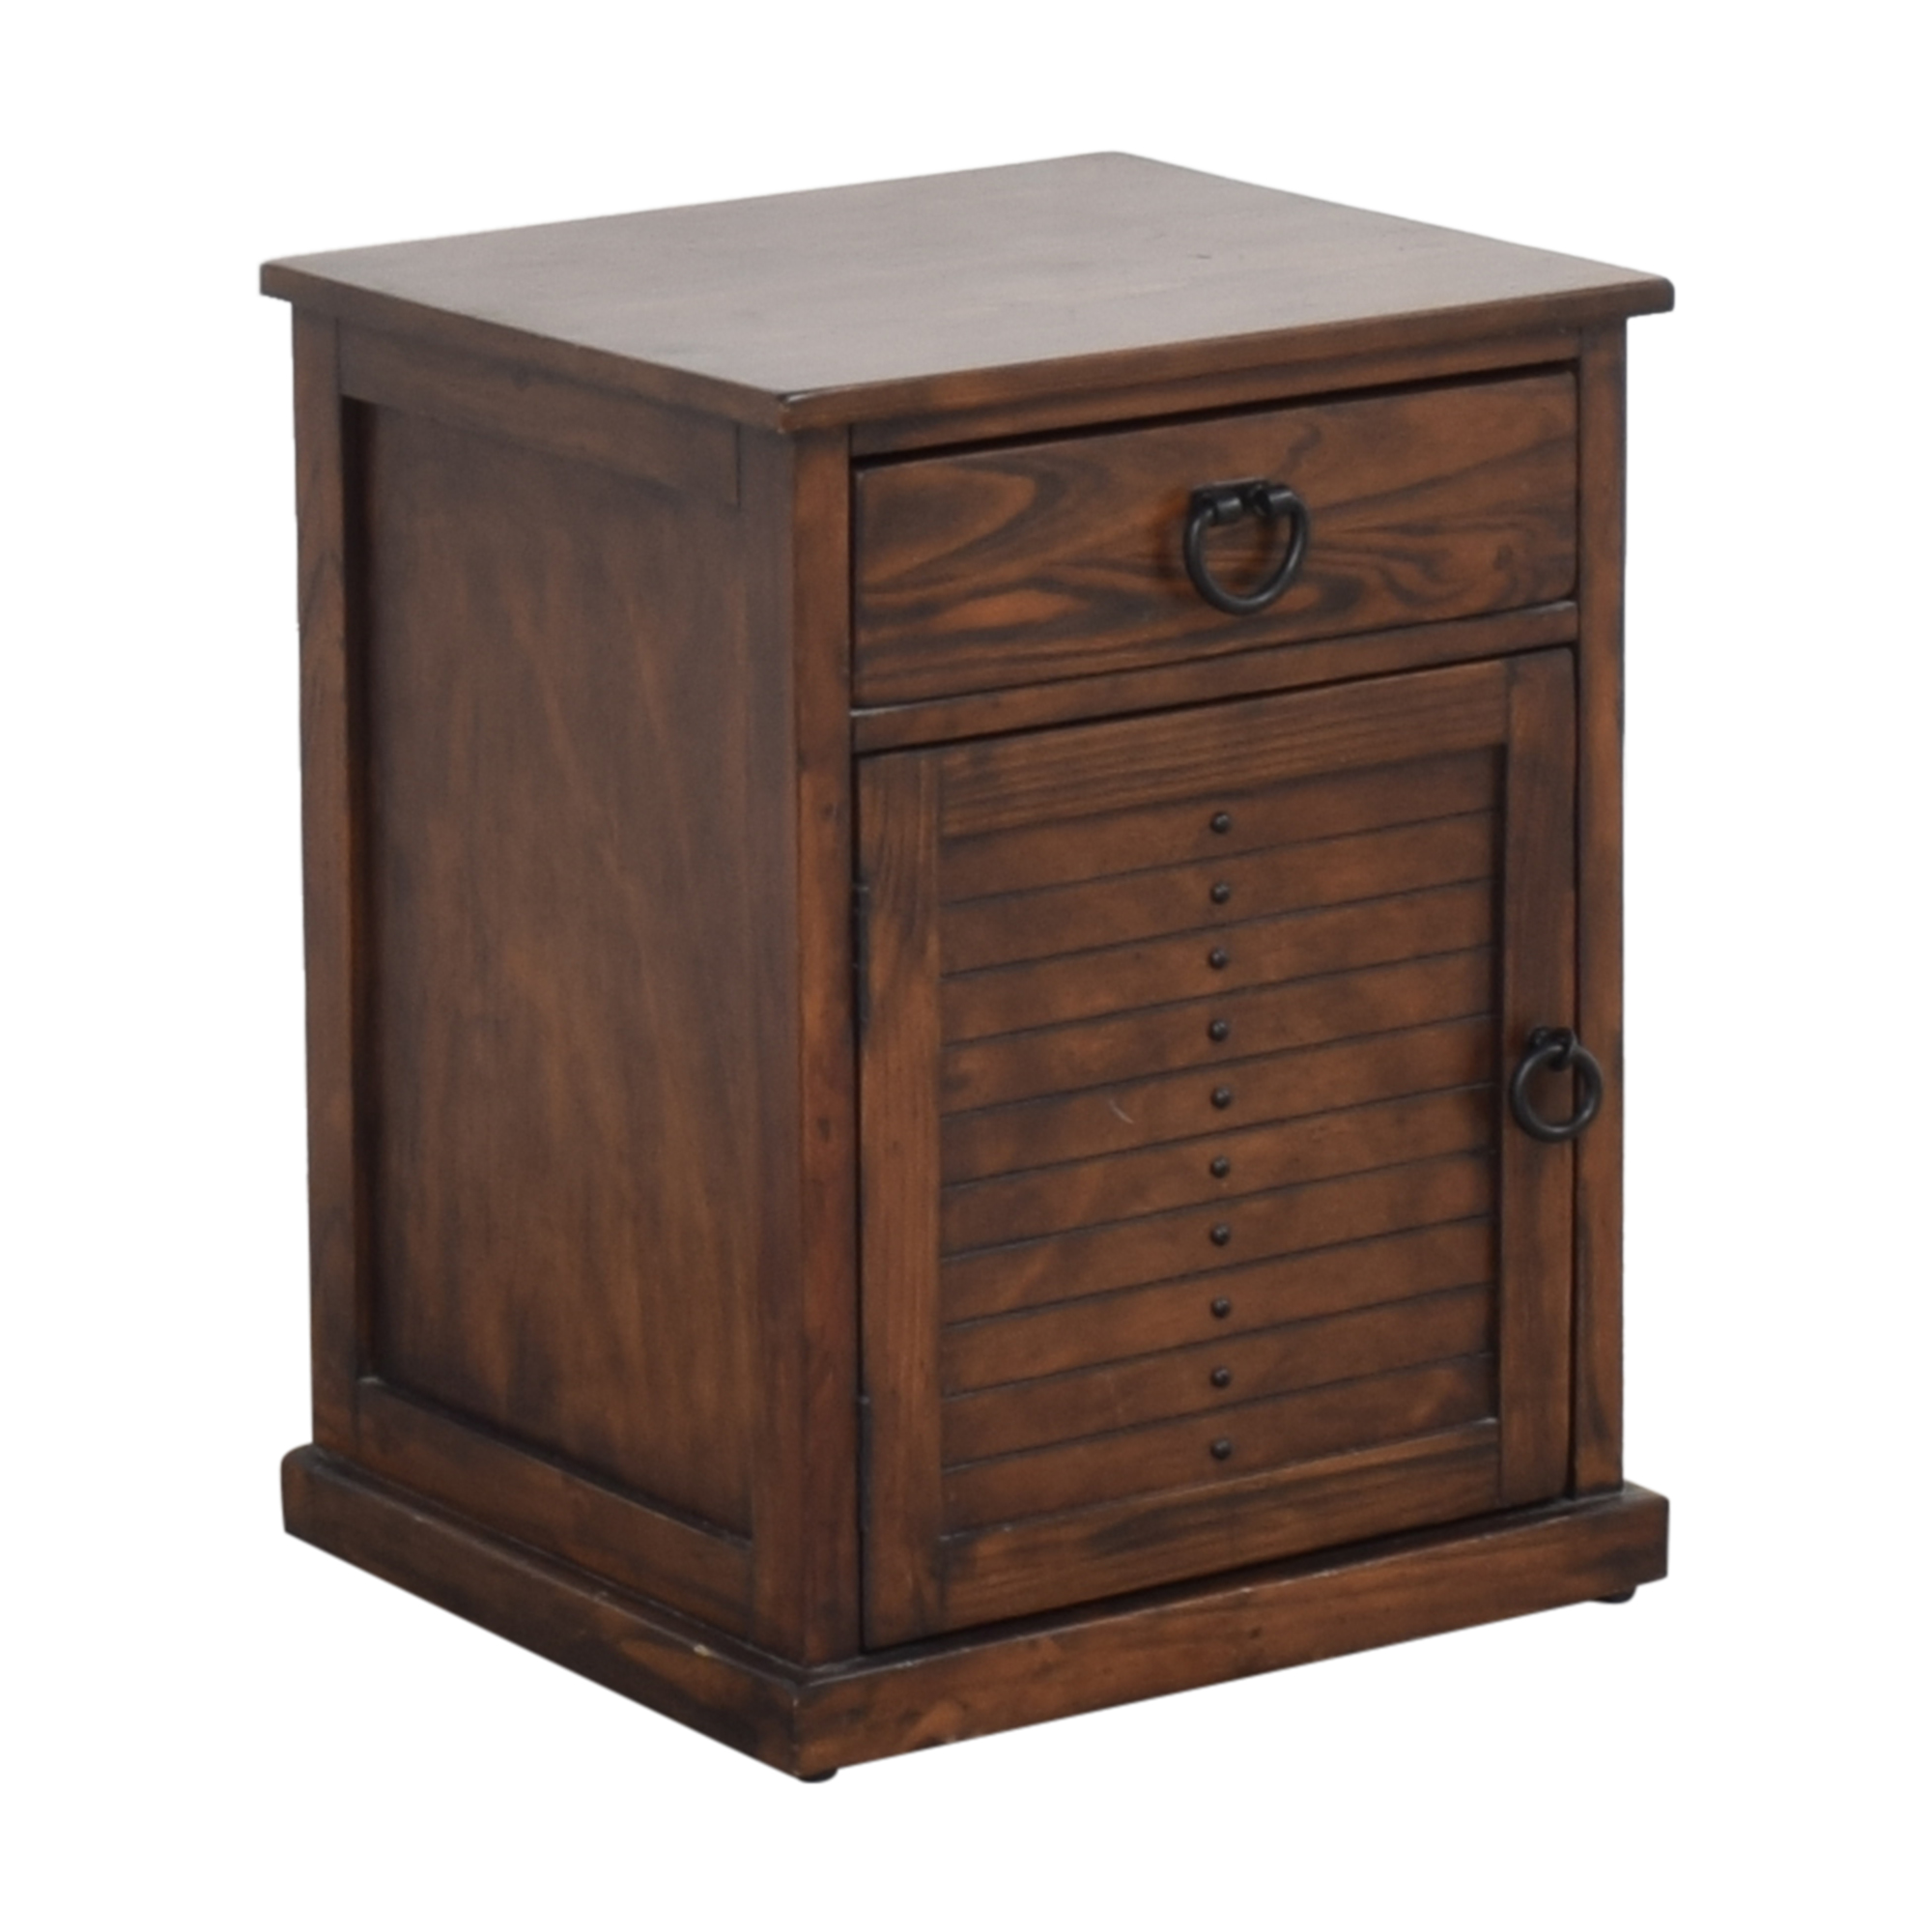 Pier 1 Pier 1 Single Drawer Nightstand End Tables